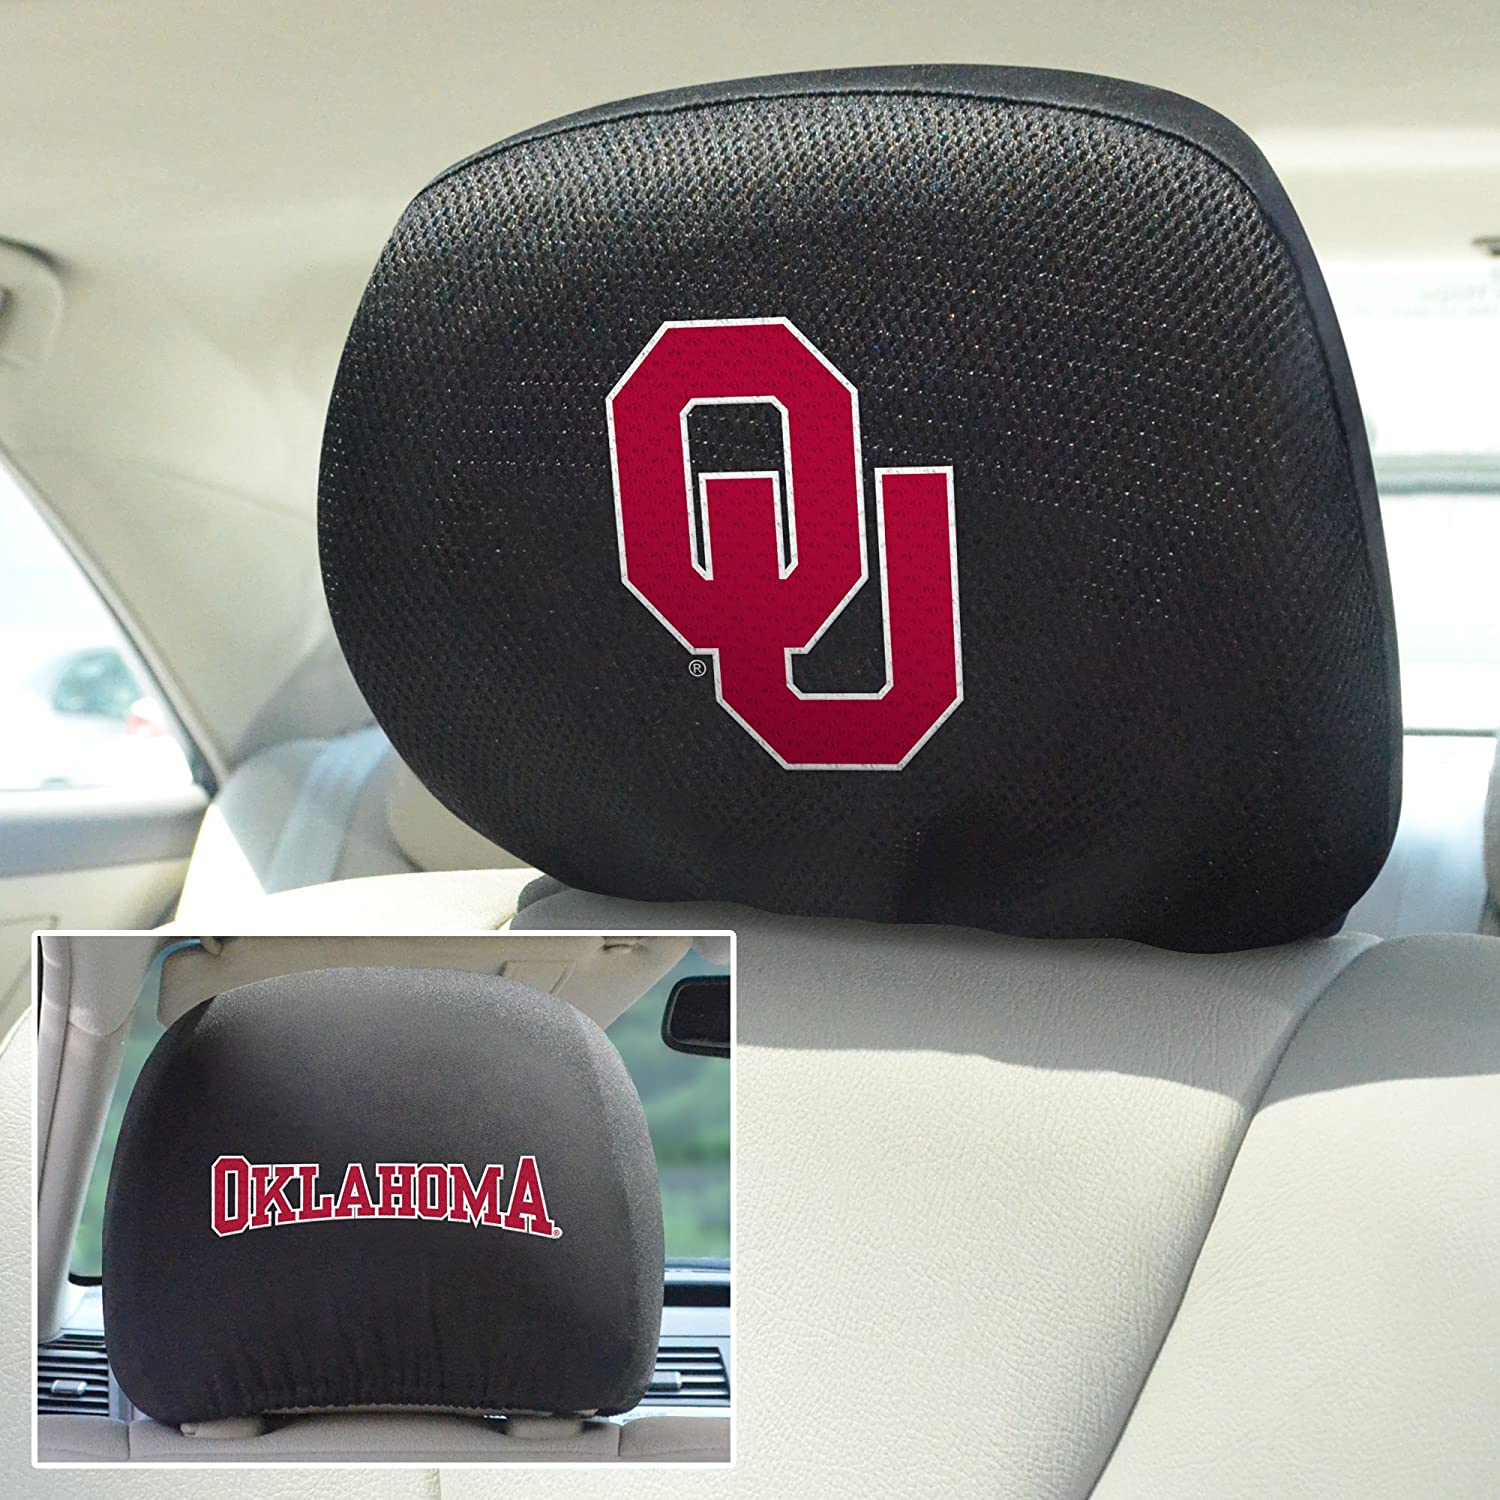 Oklahoma Sooners Ncaa Polyester Embroidered Seat Cover